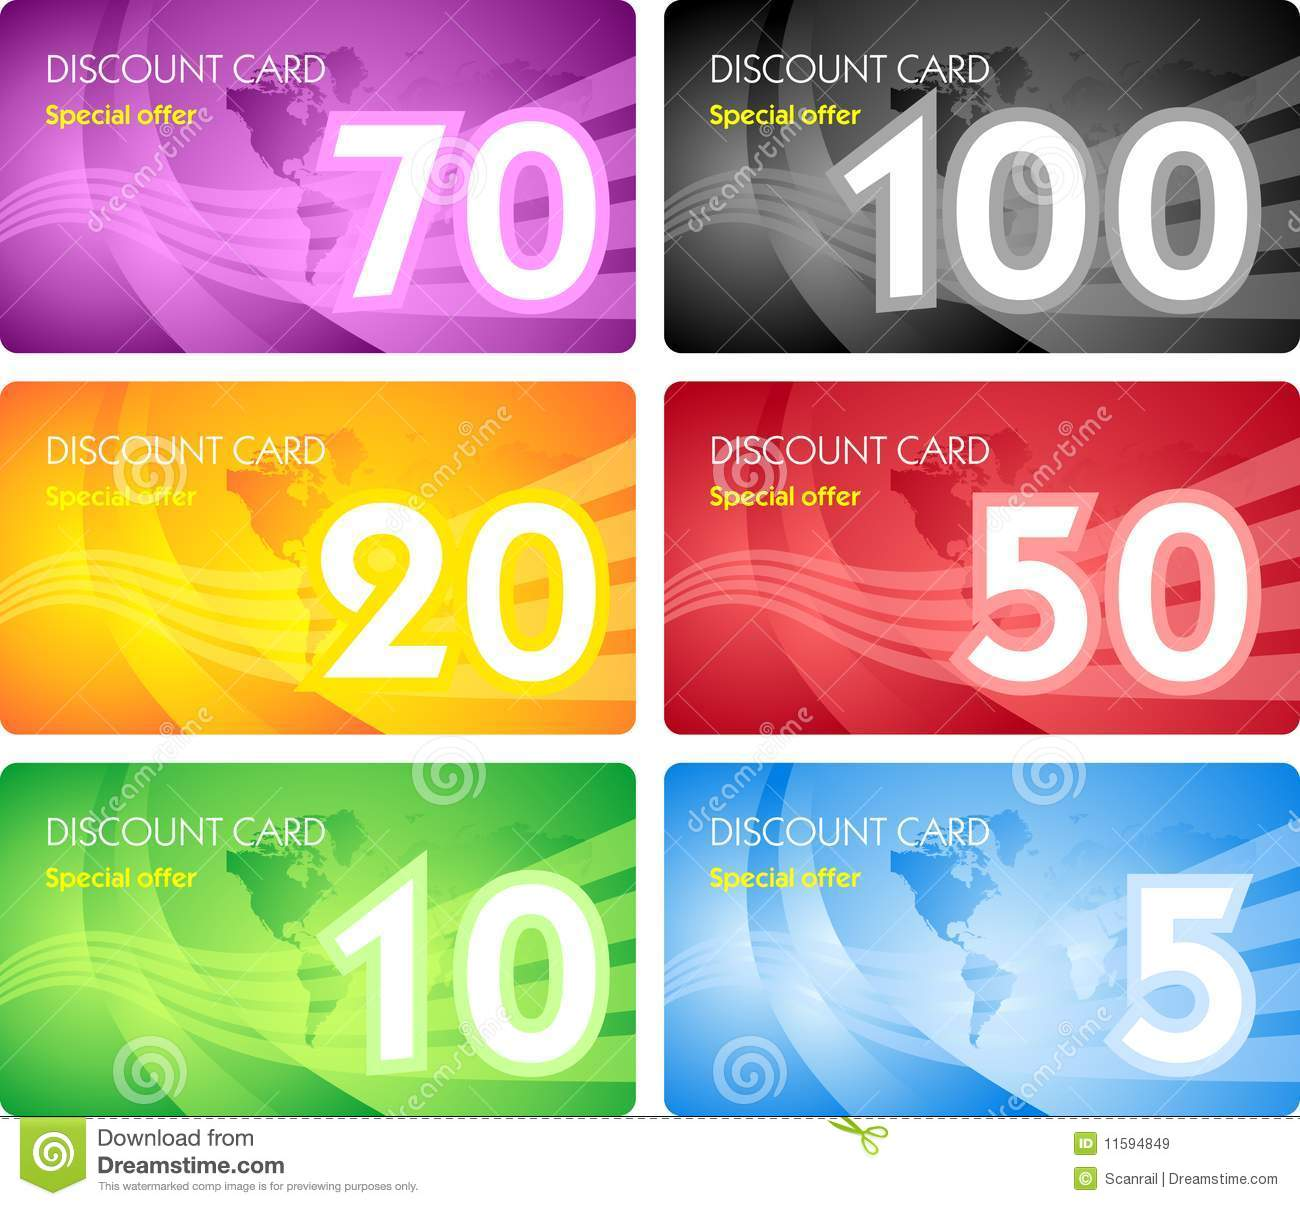 Set Of Discount Card Templates Royalty Free Stock Images ...